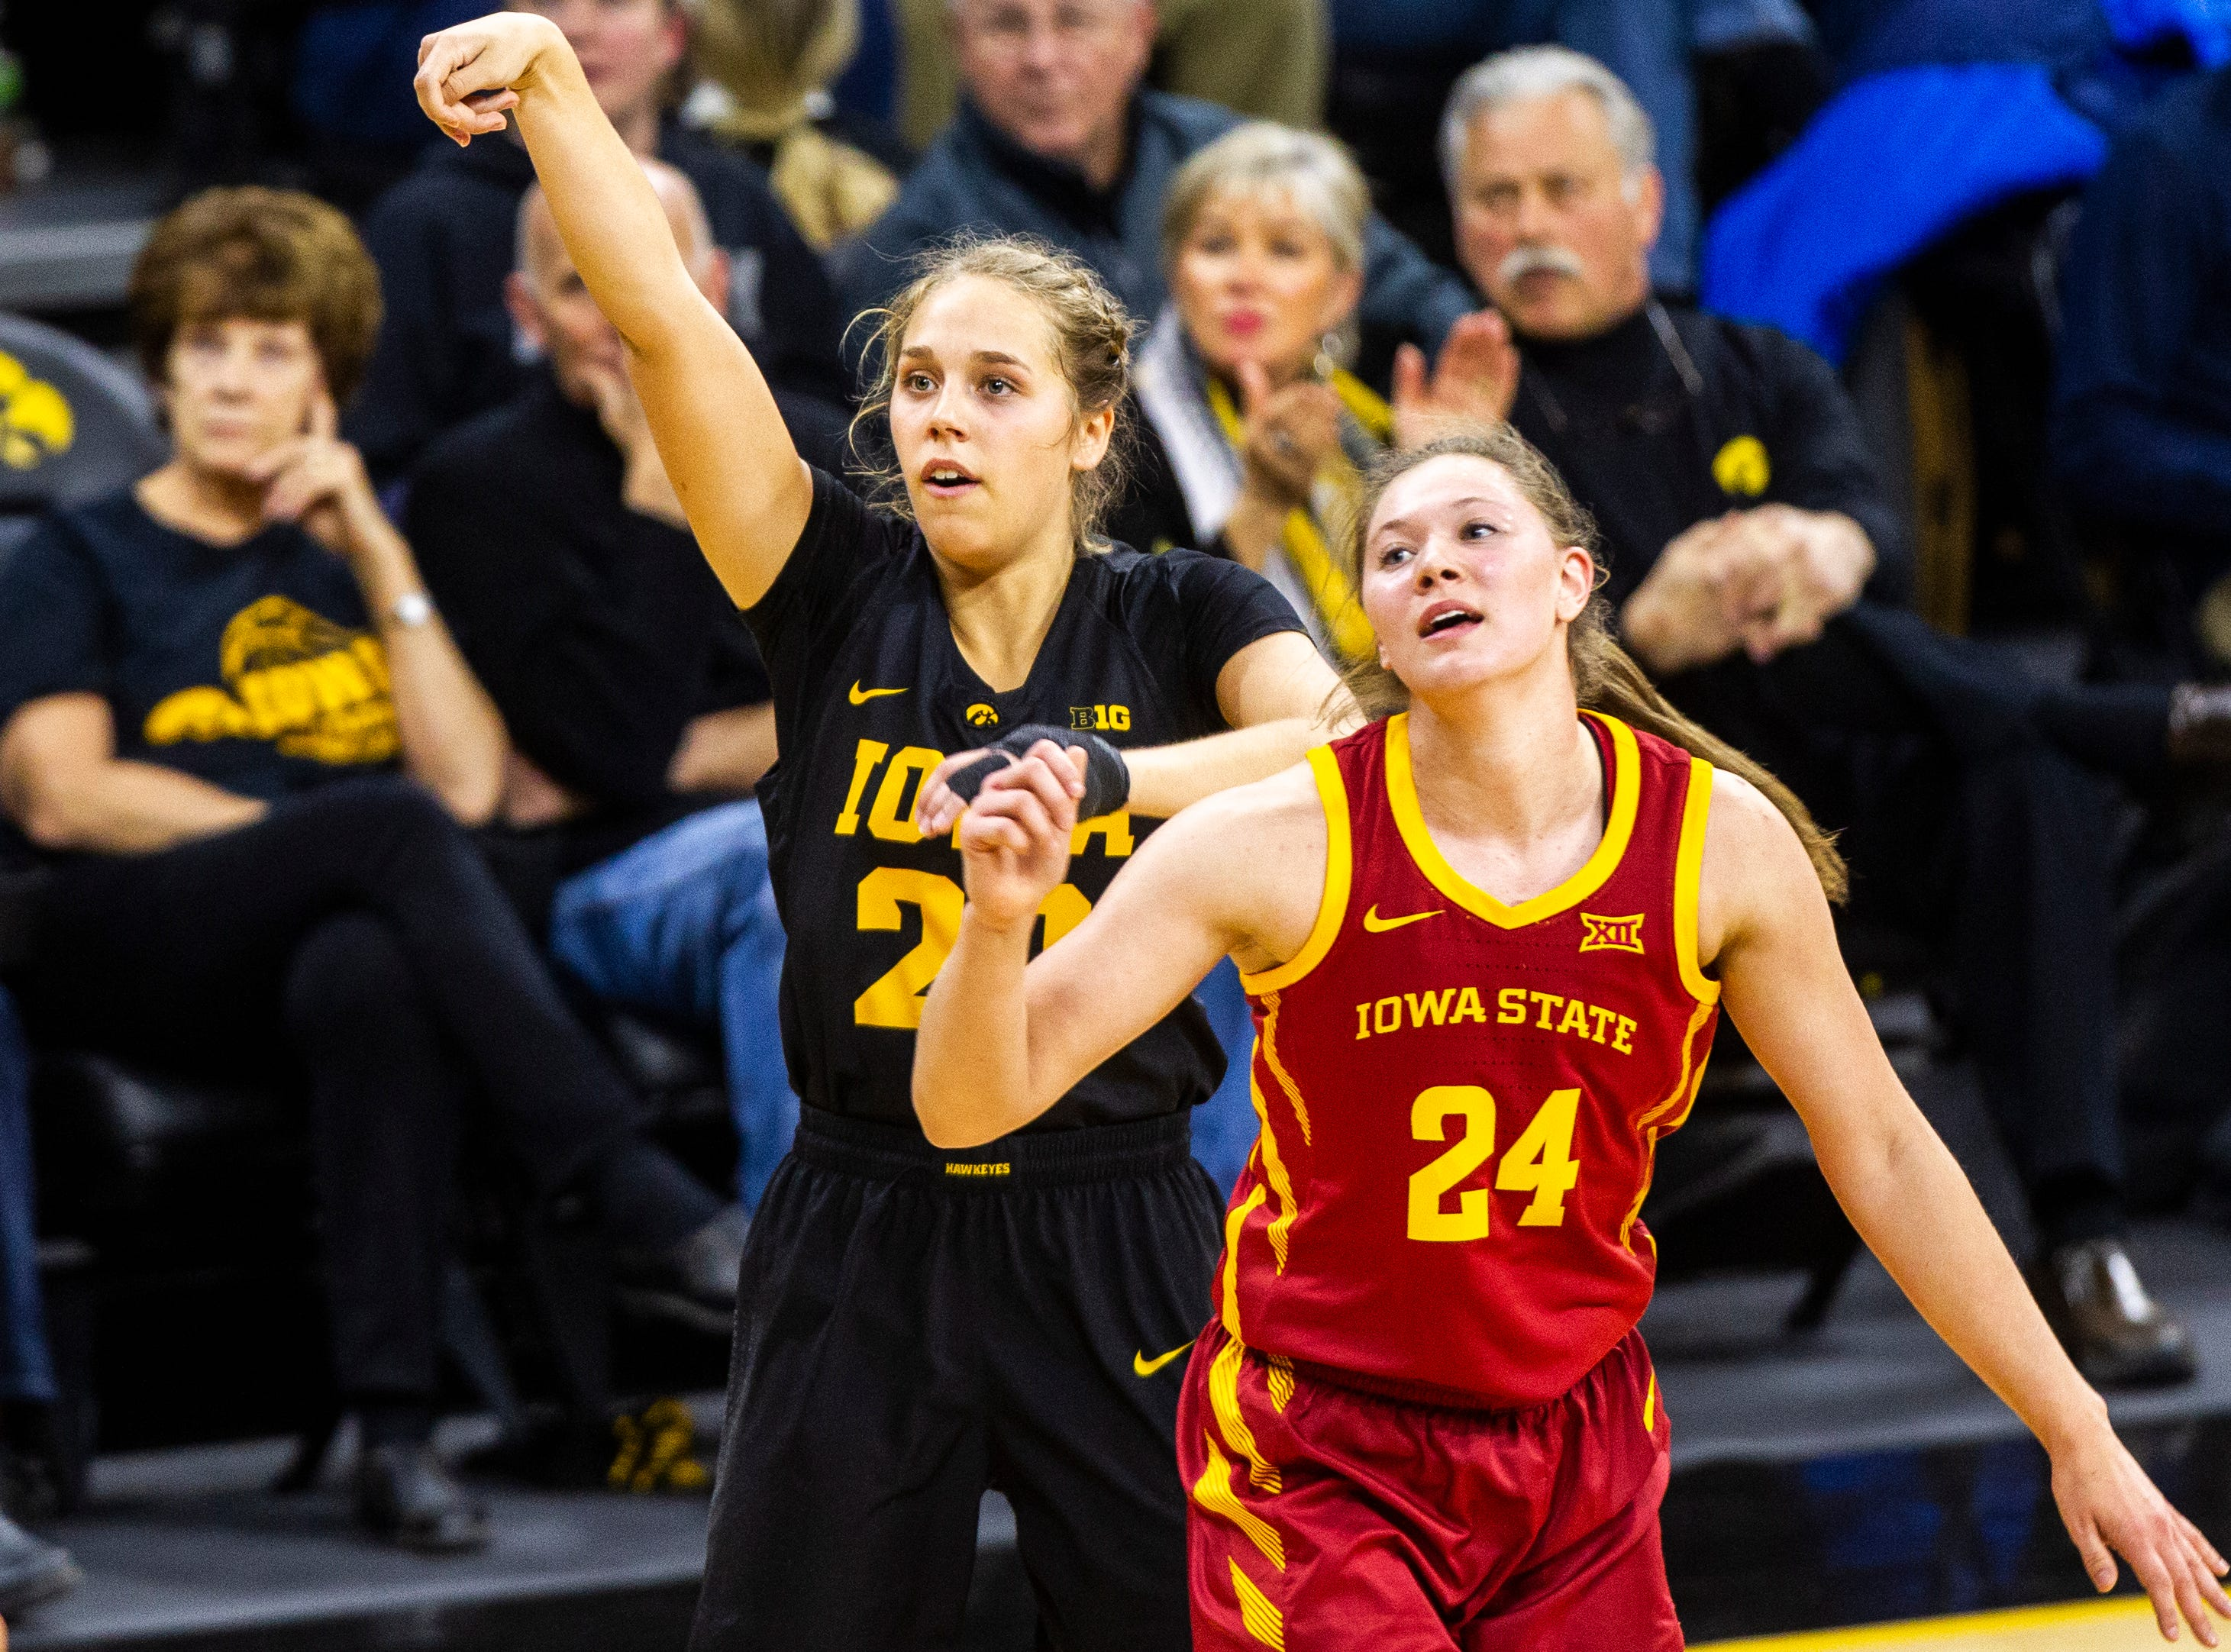 Iowa guard Kathleen Doyle (22) watches as her 3-point basket lands while being defended by Iowa State guard Ashley Joens (24) during a Cy-Hawk series NCAA women's basketball game on Wednesday, Dec. 5, 2018, at Carver-Hawkeye Arena in Iowa City.